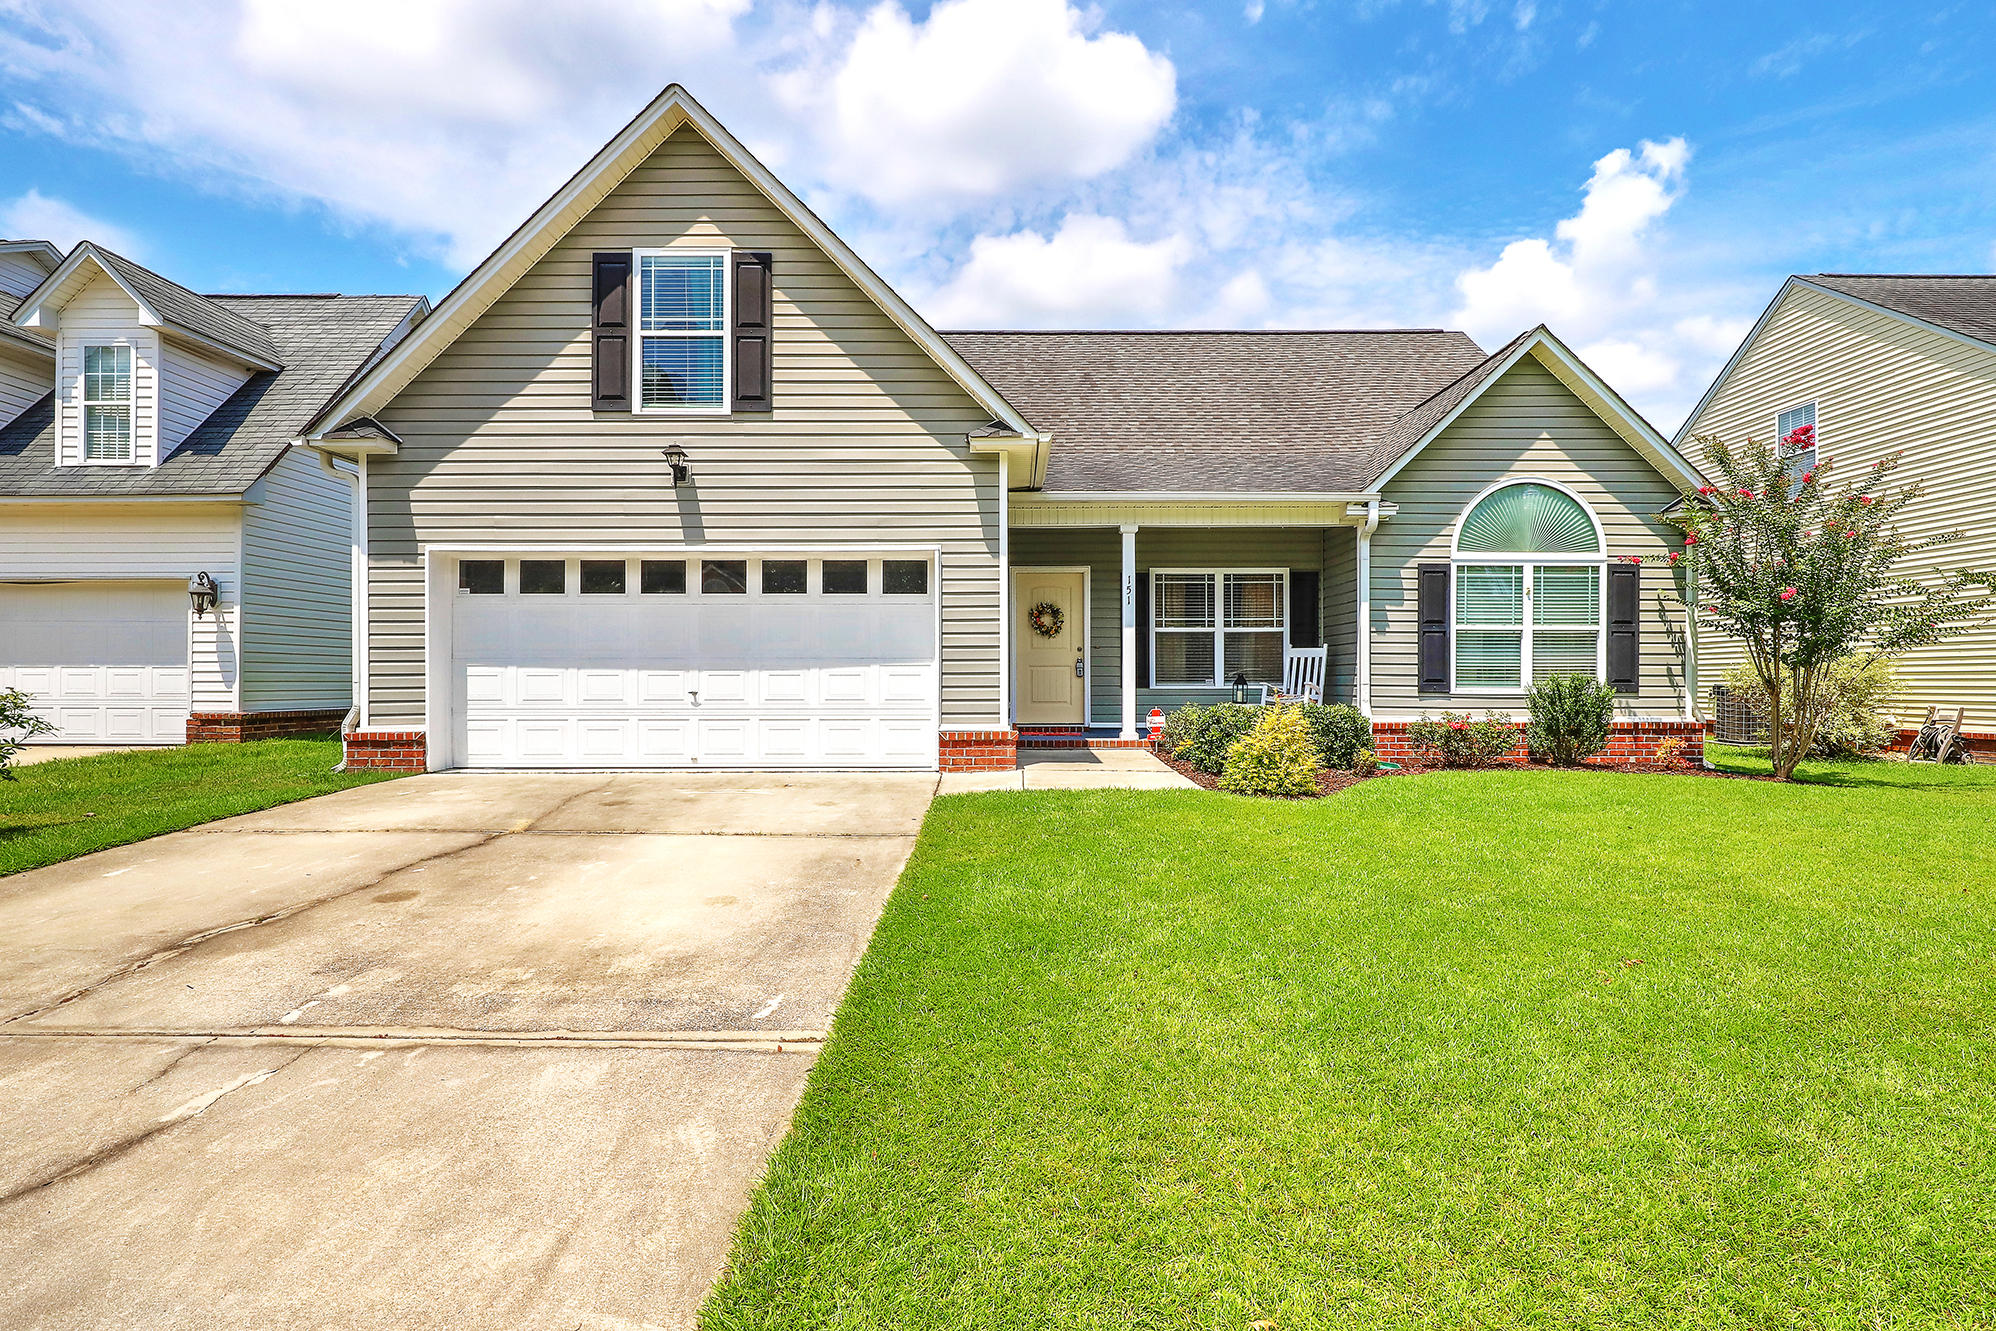 151 Cotillion Crescent Summerville, SC 29483